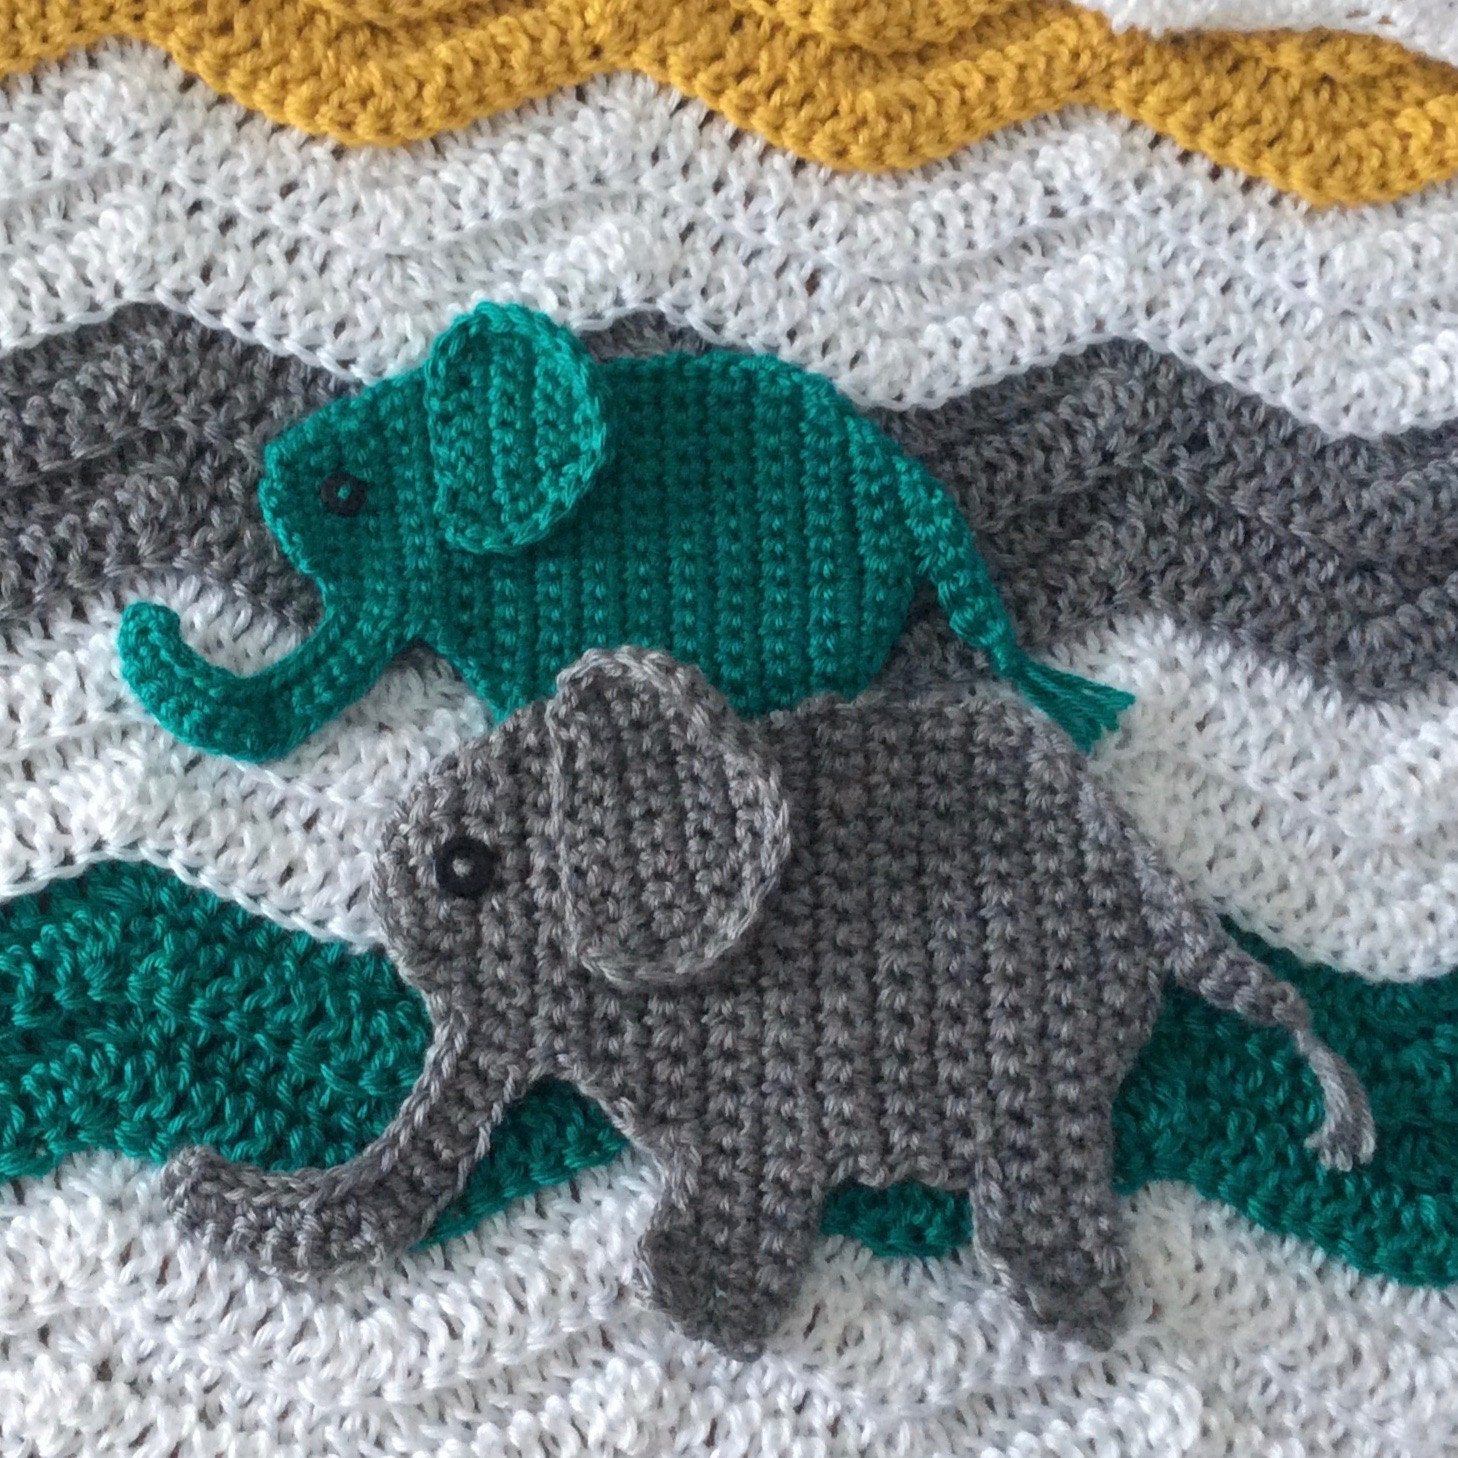 Crochet Elephant Applique Pattern Jungle Nursery Crochet